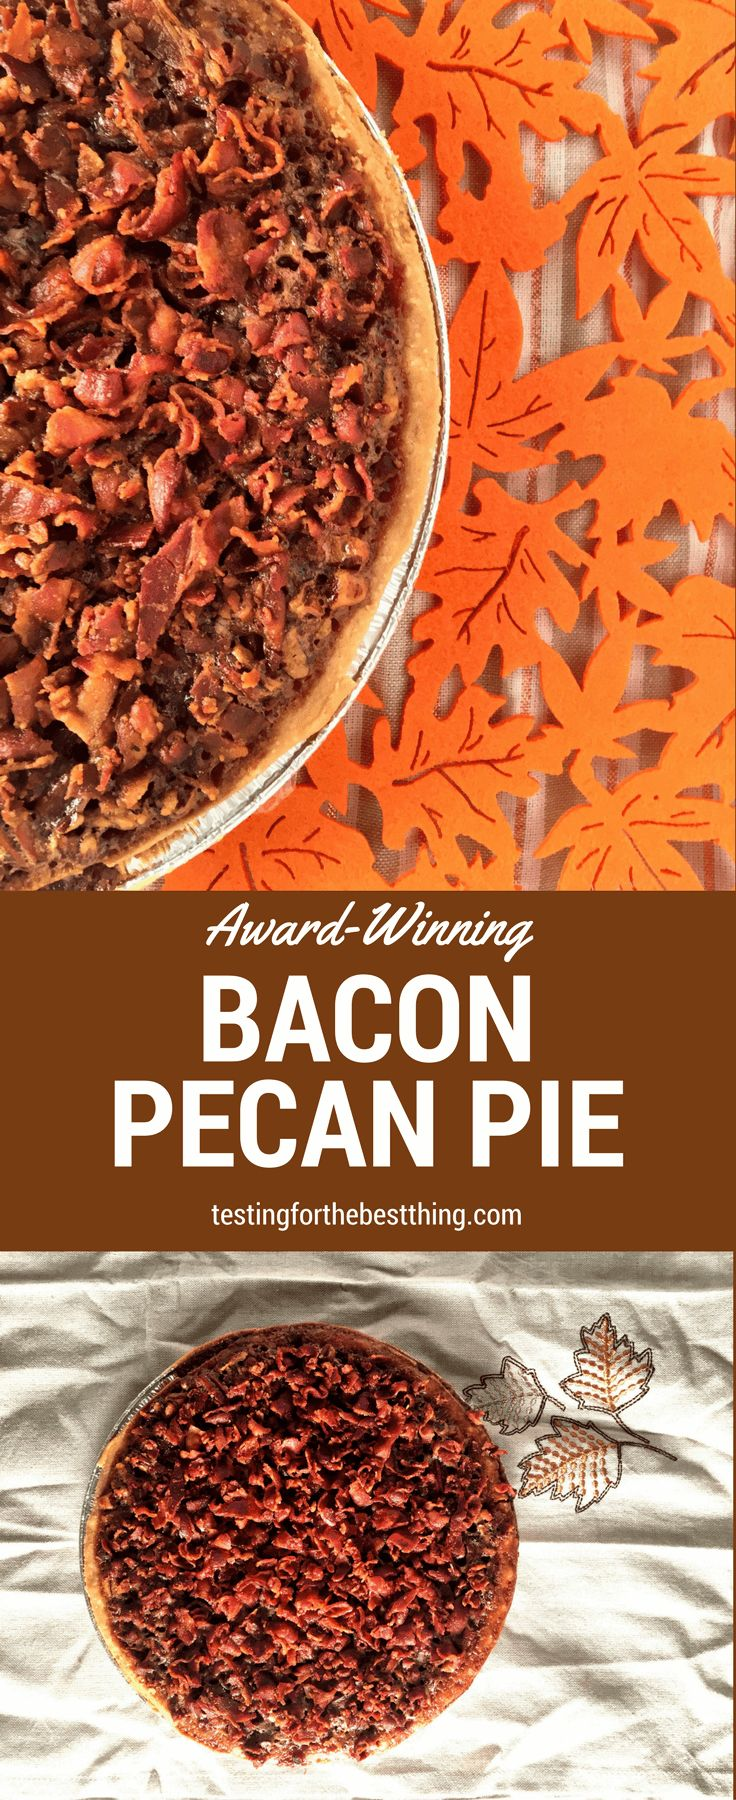 This award-winning bacon pie is amazing. It's festive, unique and one of the tastiest things you'll make this season. Your guests will go wild for it! - www.testingforthebestthing.com/award-winning-bacon-pecan-pie/